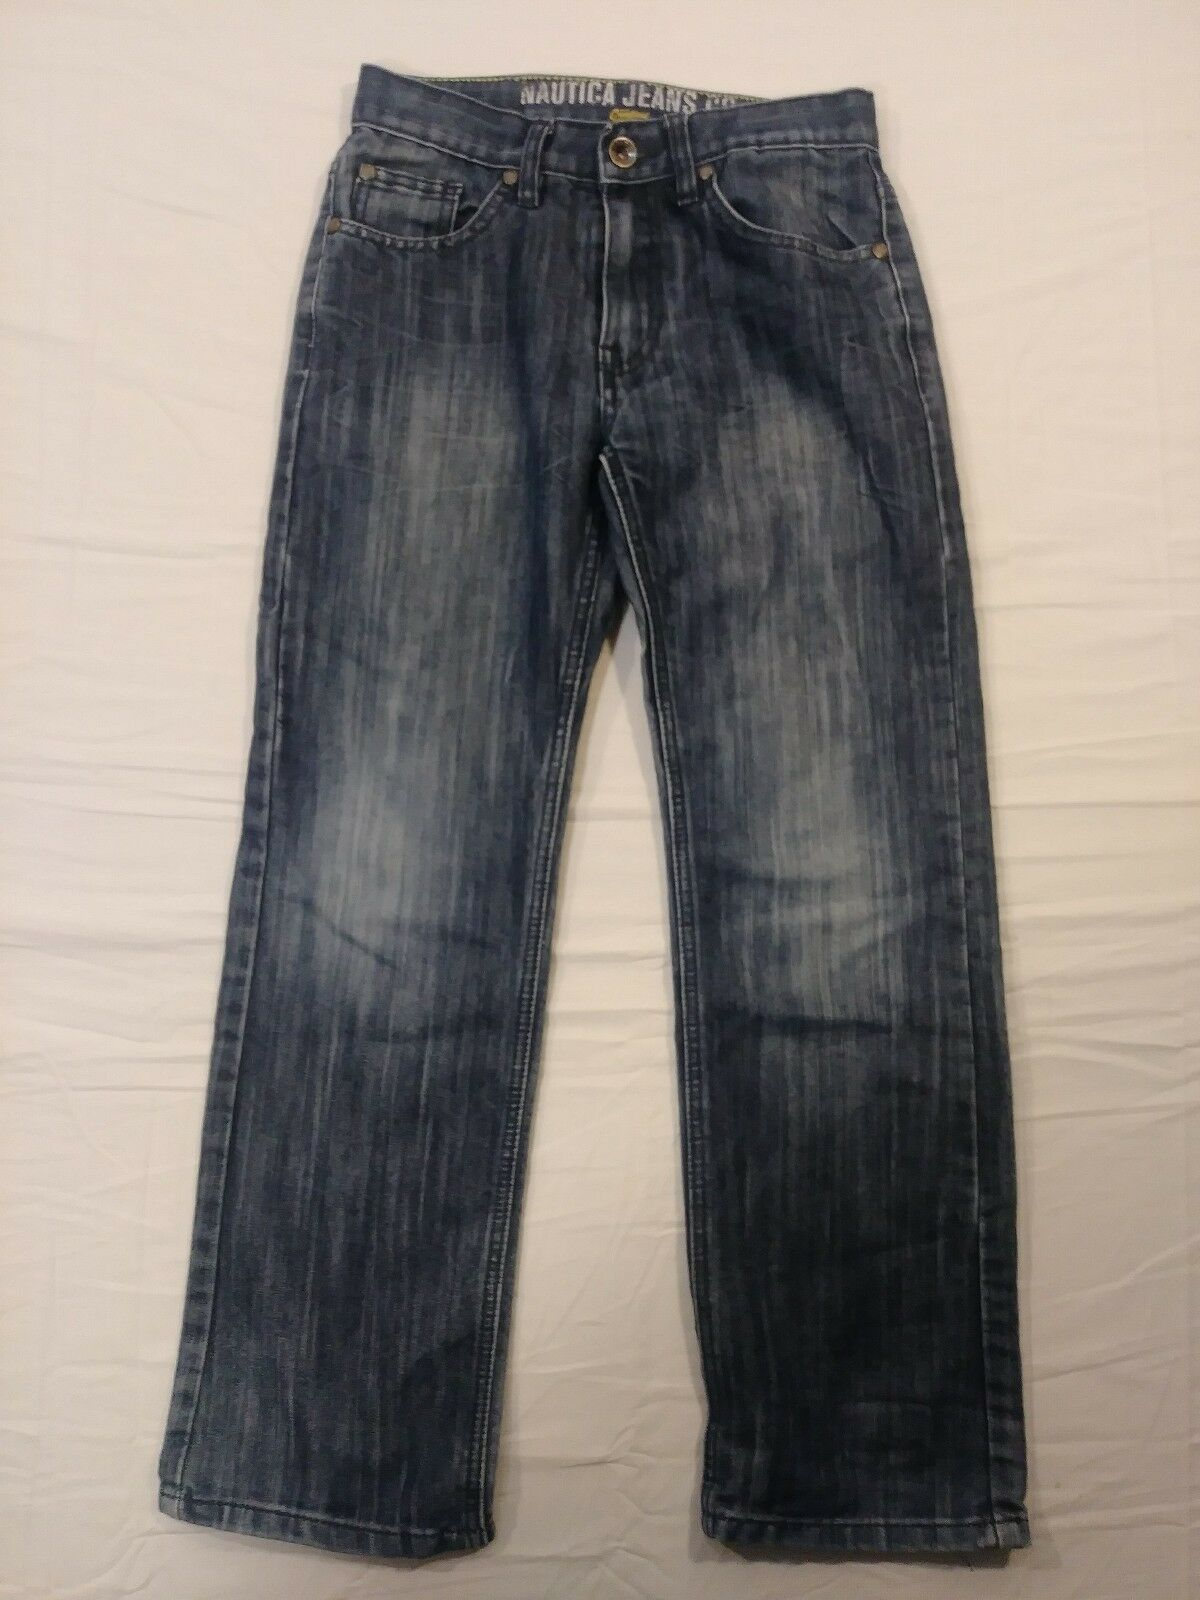 Primary image for Nautica Boys Size 12 Mid Wash Blue Denim 5 Pocket Straight Leg Slim Jeans (#8)